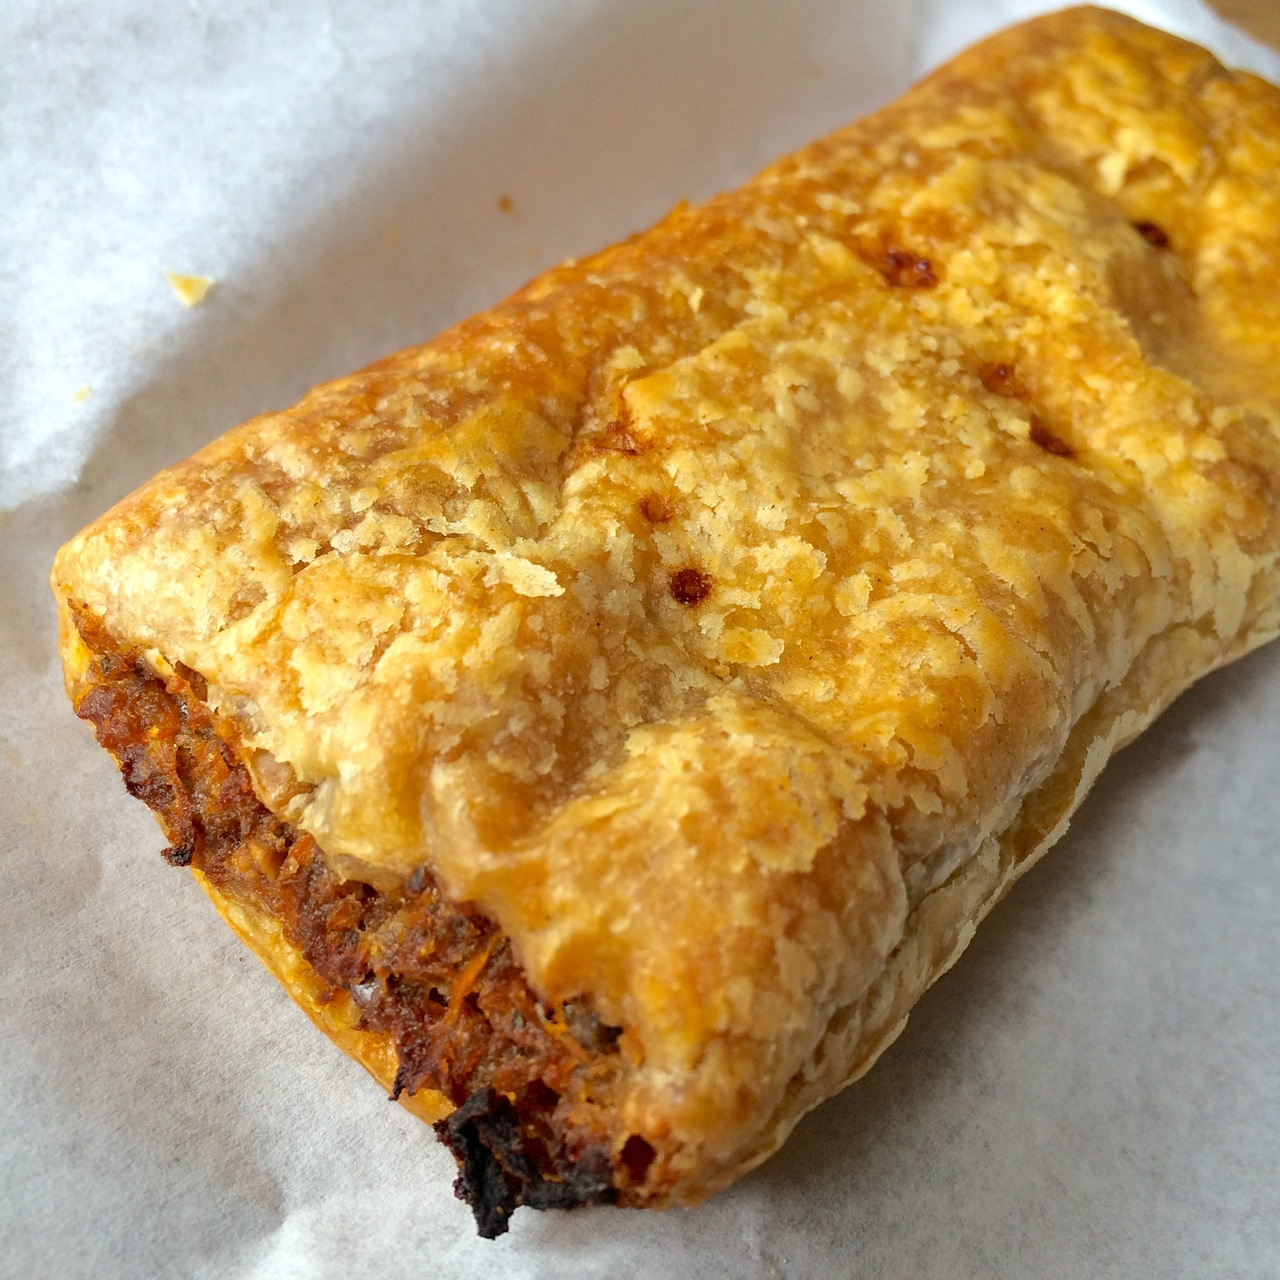 https://i0.wp.com/fatgayvegan.com/wp-content/uploads/2015/08/Vegan-sausage-roll.jpg?fit=1280%2C1280